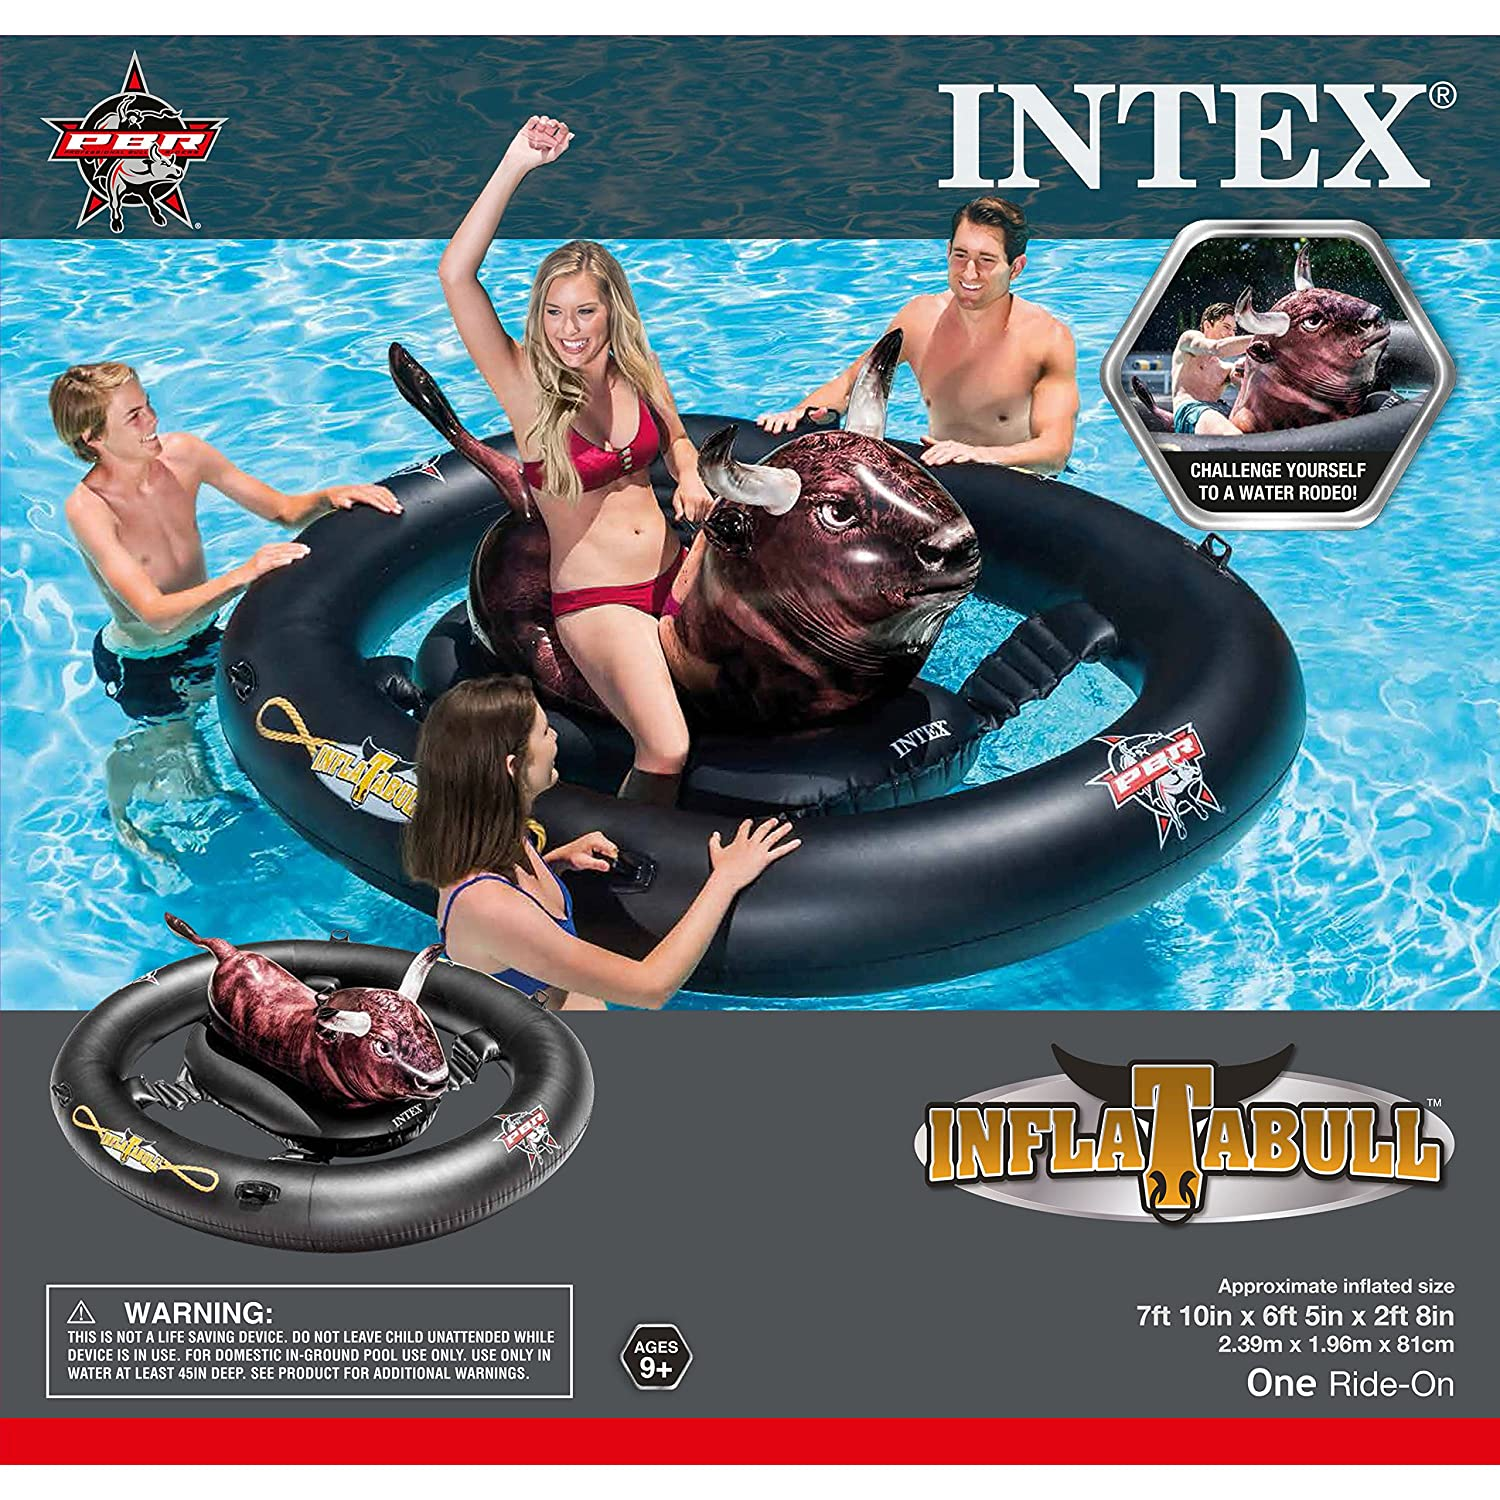 INTEX inflat-a-Bull, Inflable Ride-on Piscina de Juguete con ...